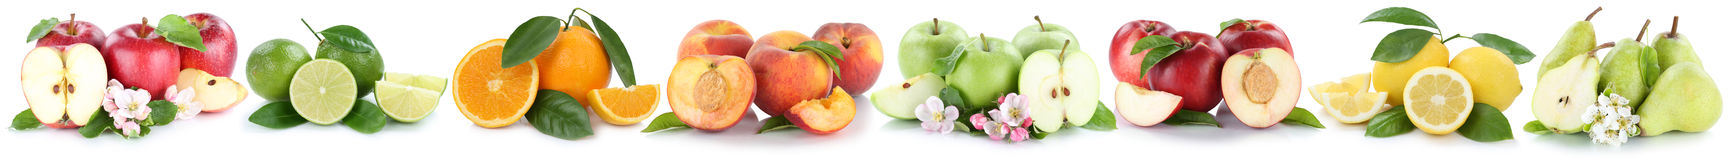 Fruits apple orange lemon nectarine apples oranges fresh fruit i Royalty Free Stock Photos